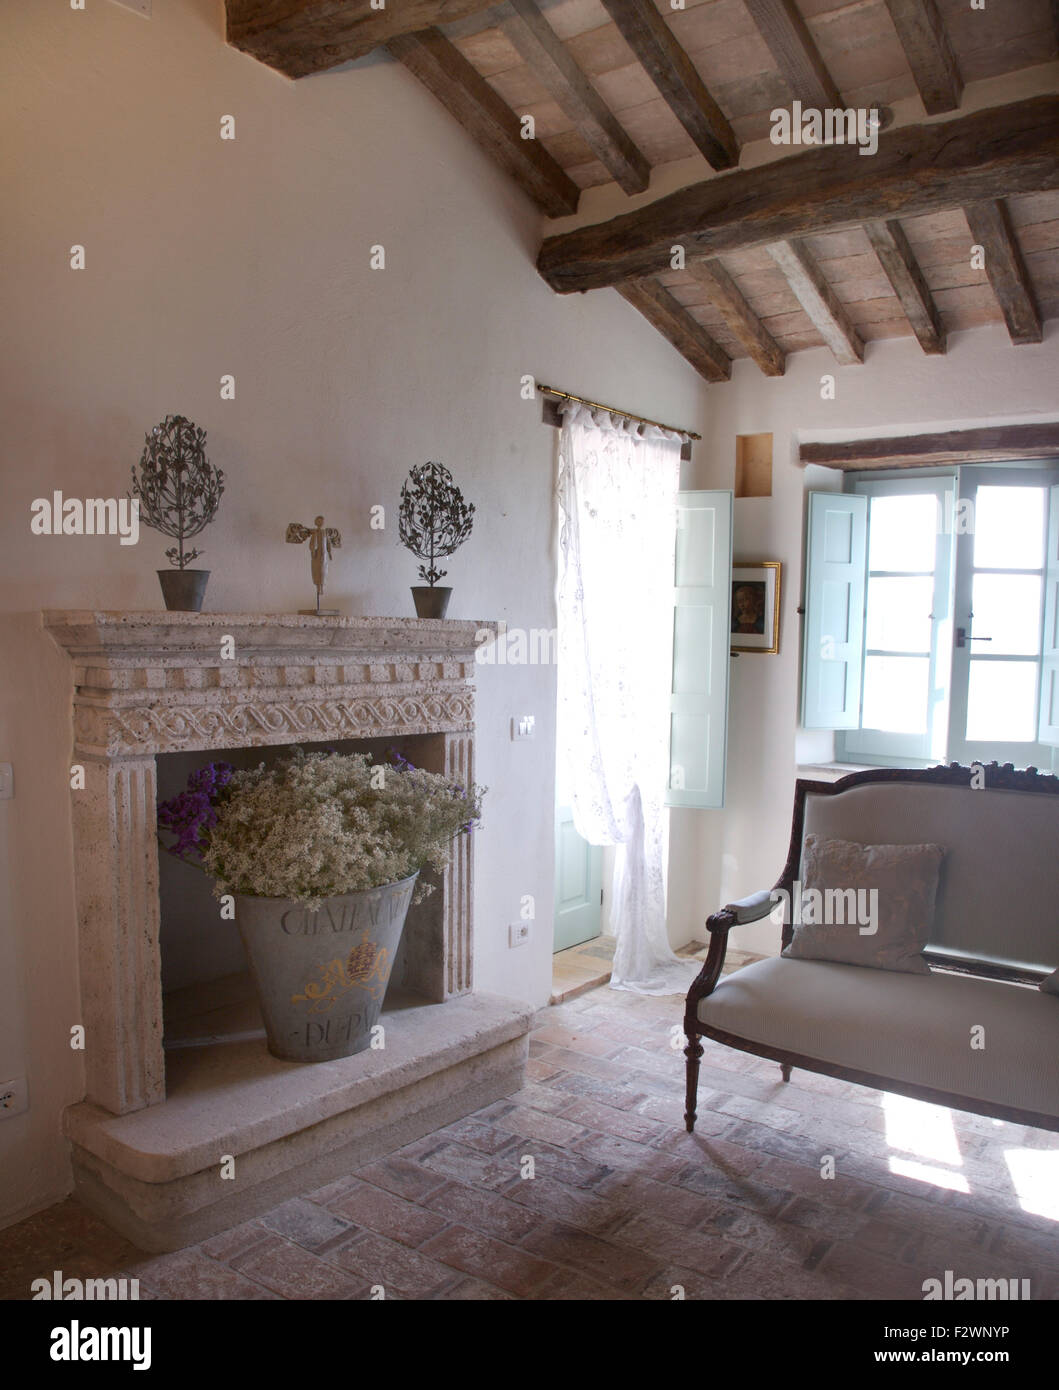 Bedroom stone fireplace - Dried Flowers In Galvanised Zinc Bucket In Ornate Stone Fireplace In Italian Country Bedroom With An Antique Sofa